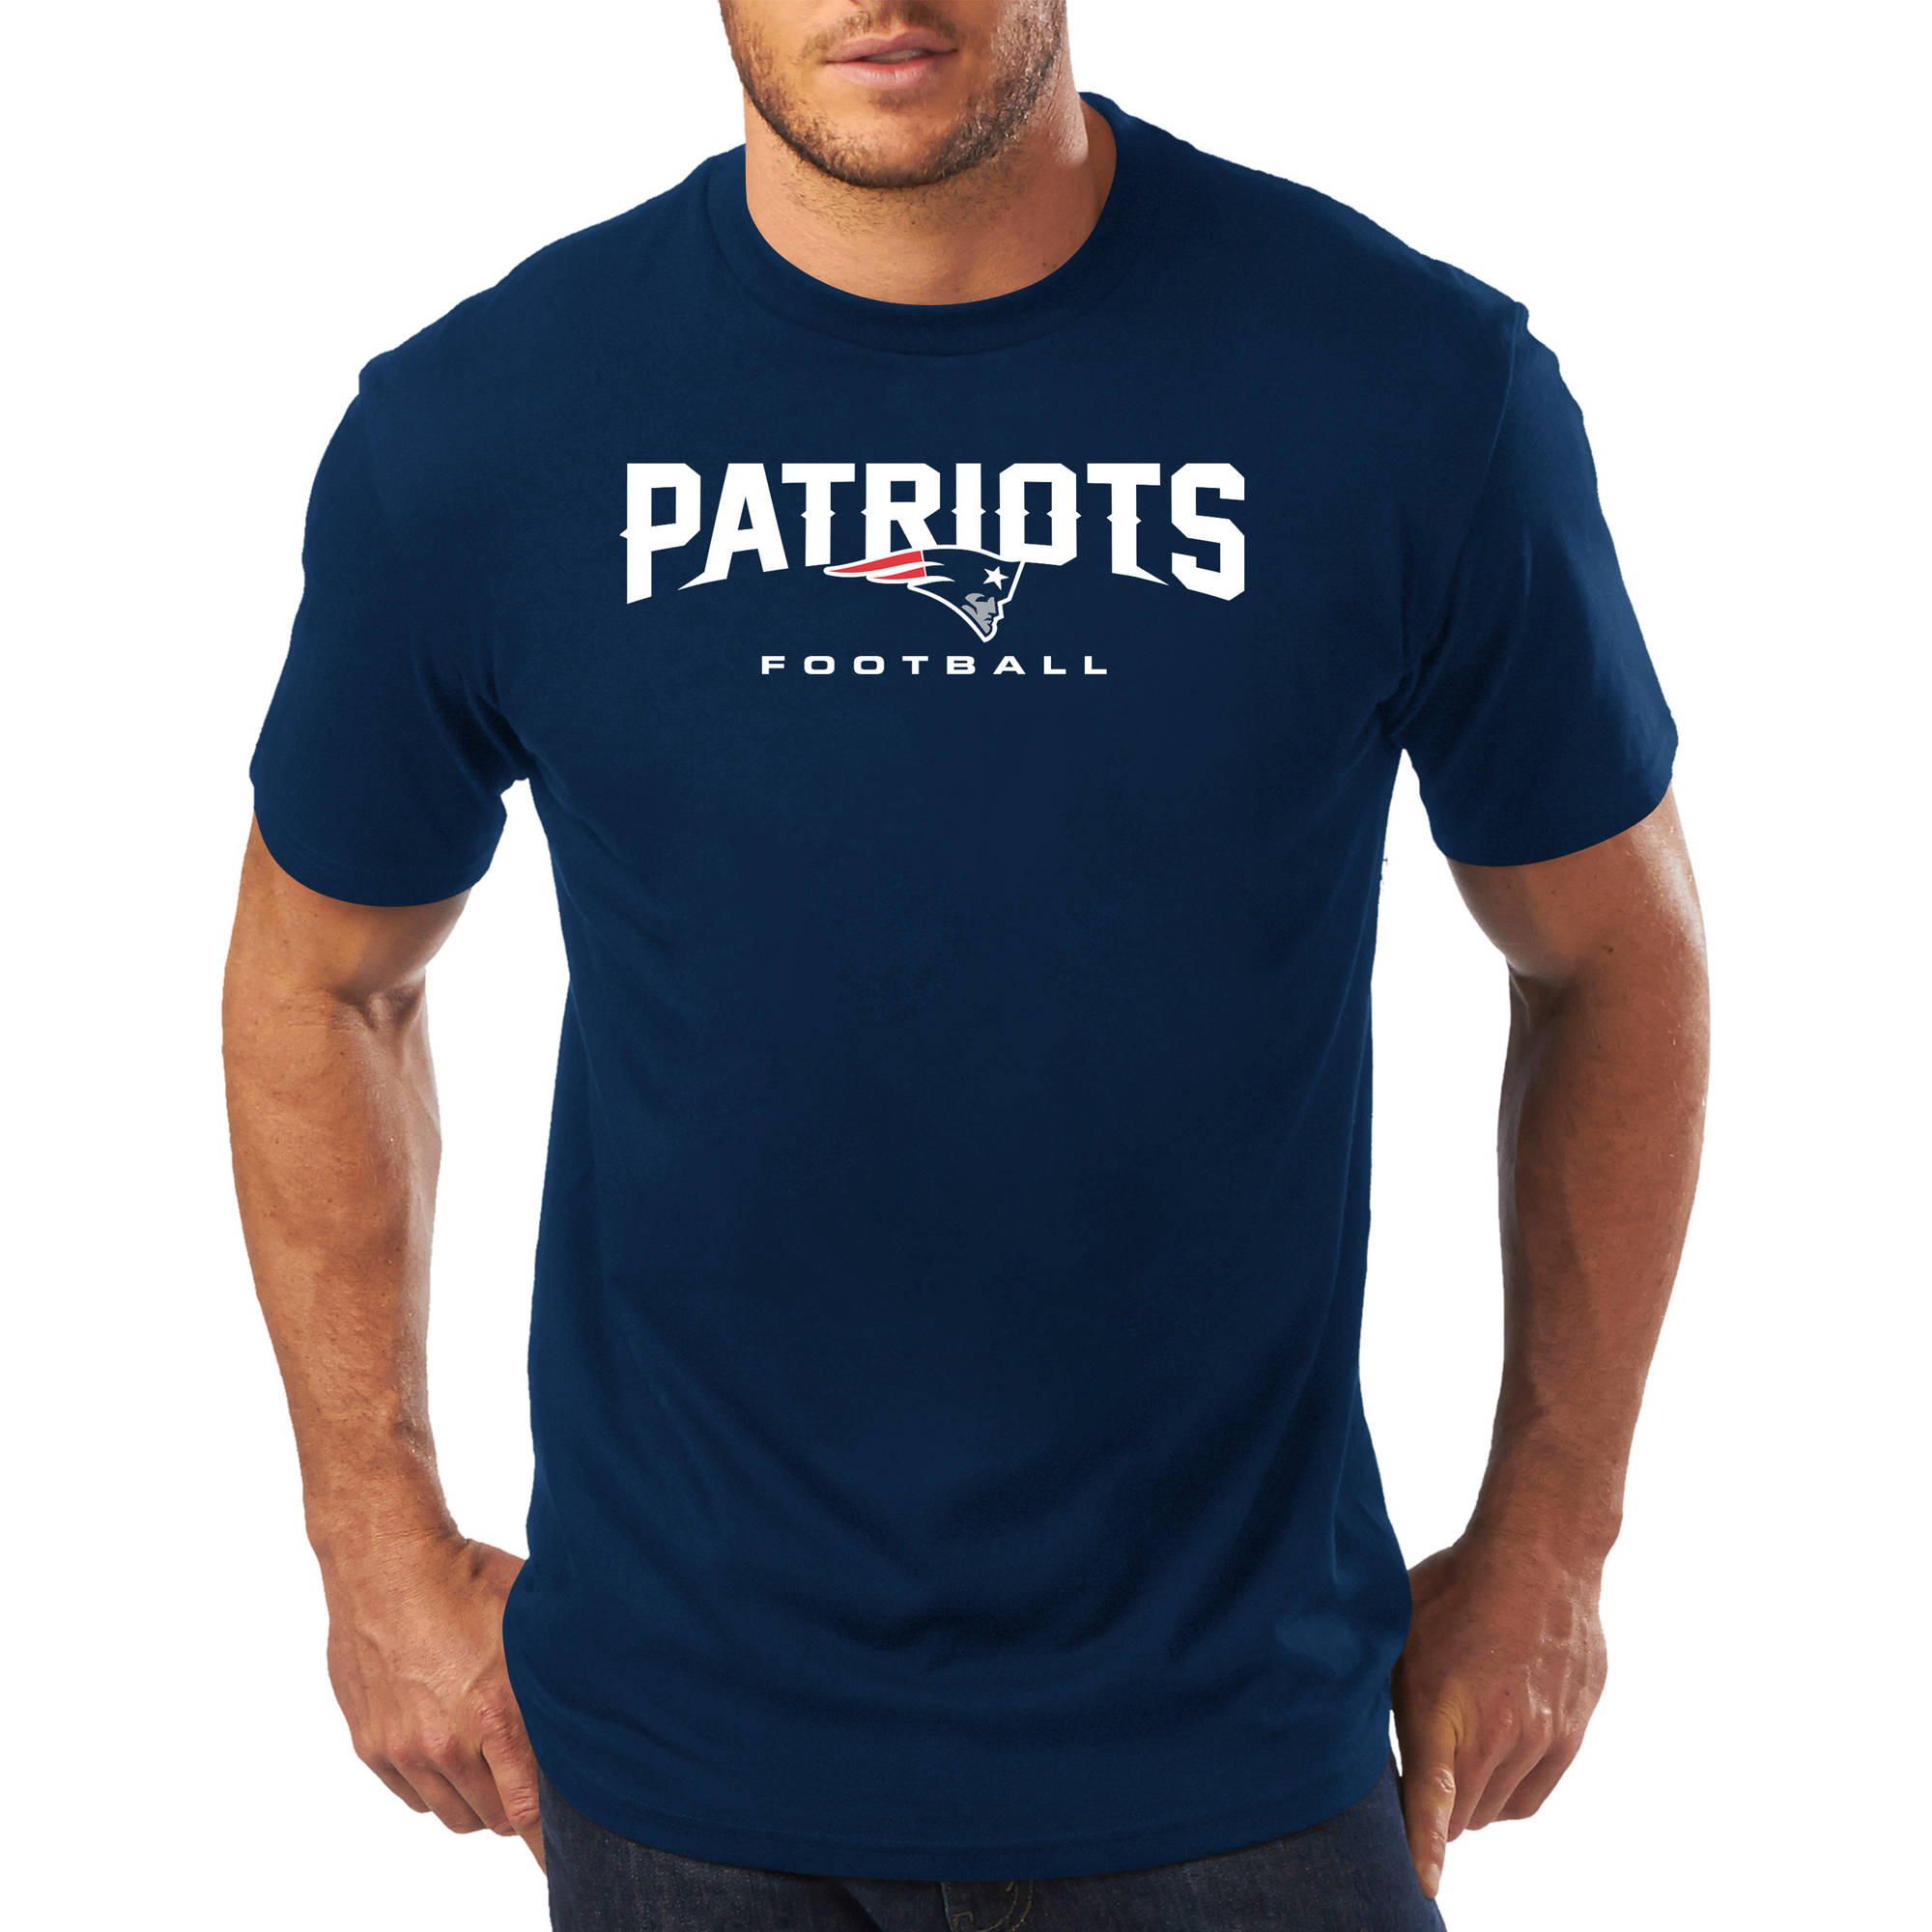 Big Men's NFL New England Patriots Short Sleeve Tee